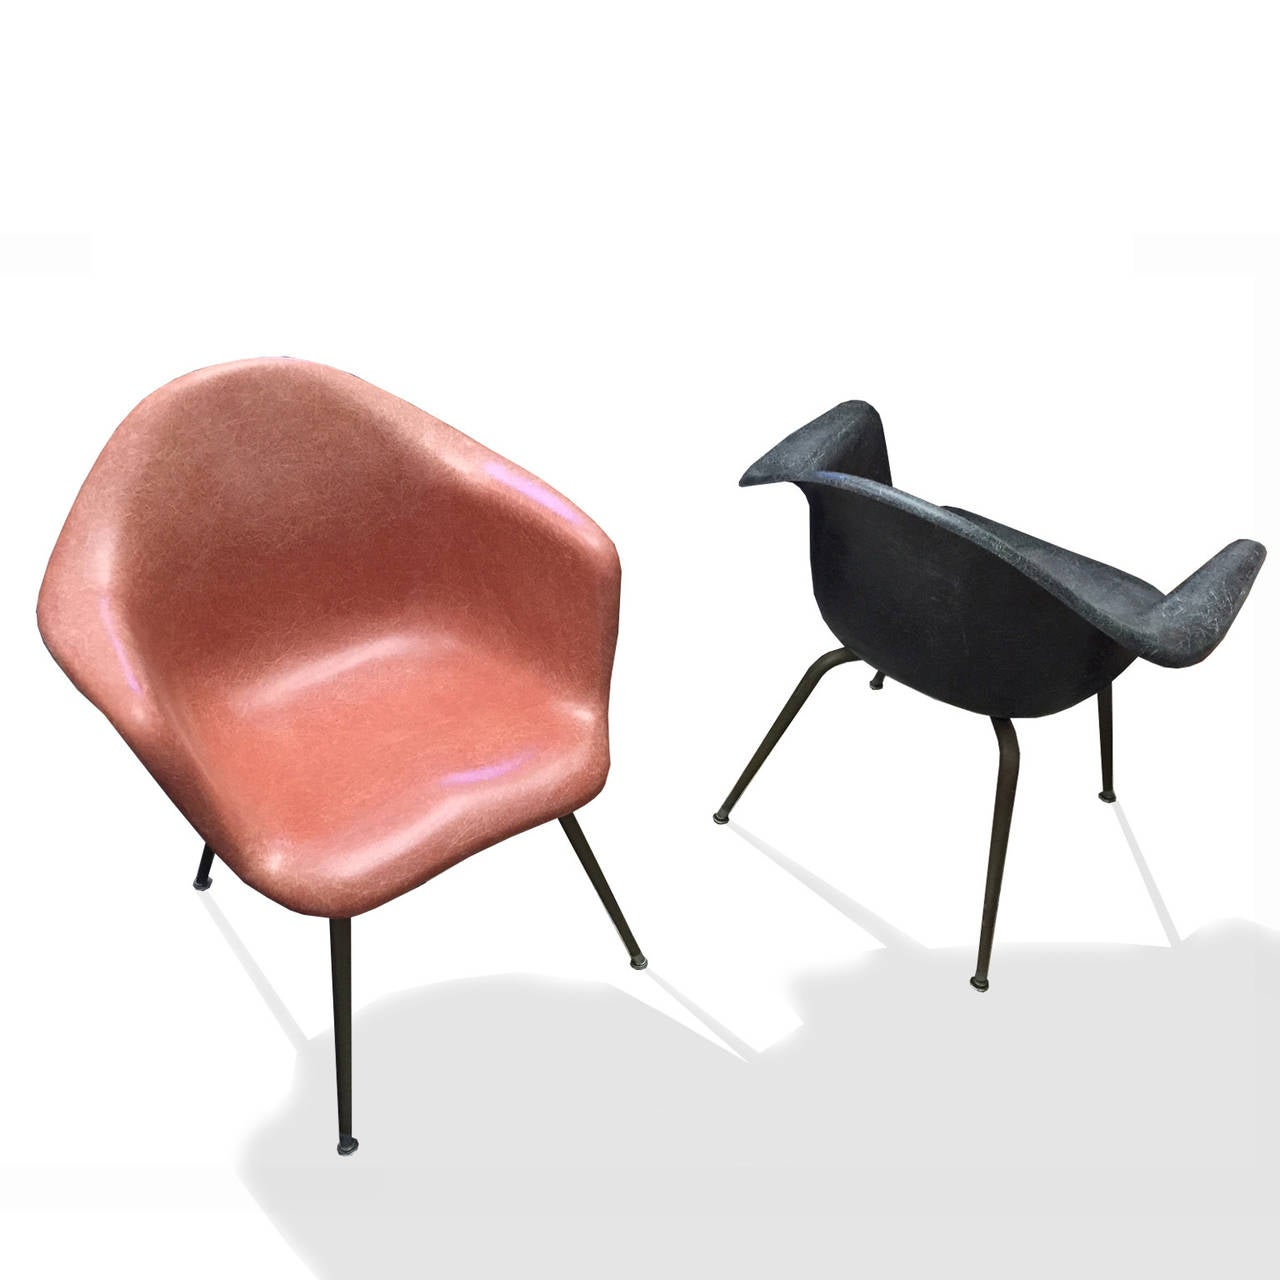 fiberglass shell chairs. colorful pair of chromcraft molded fiberglass chairs with brass legs. shell e